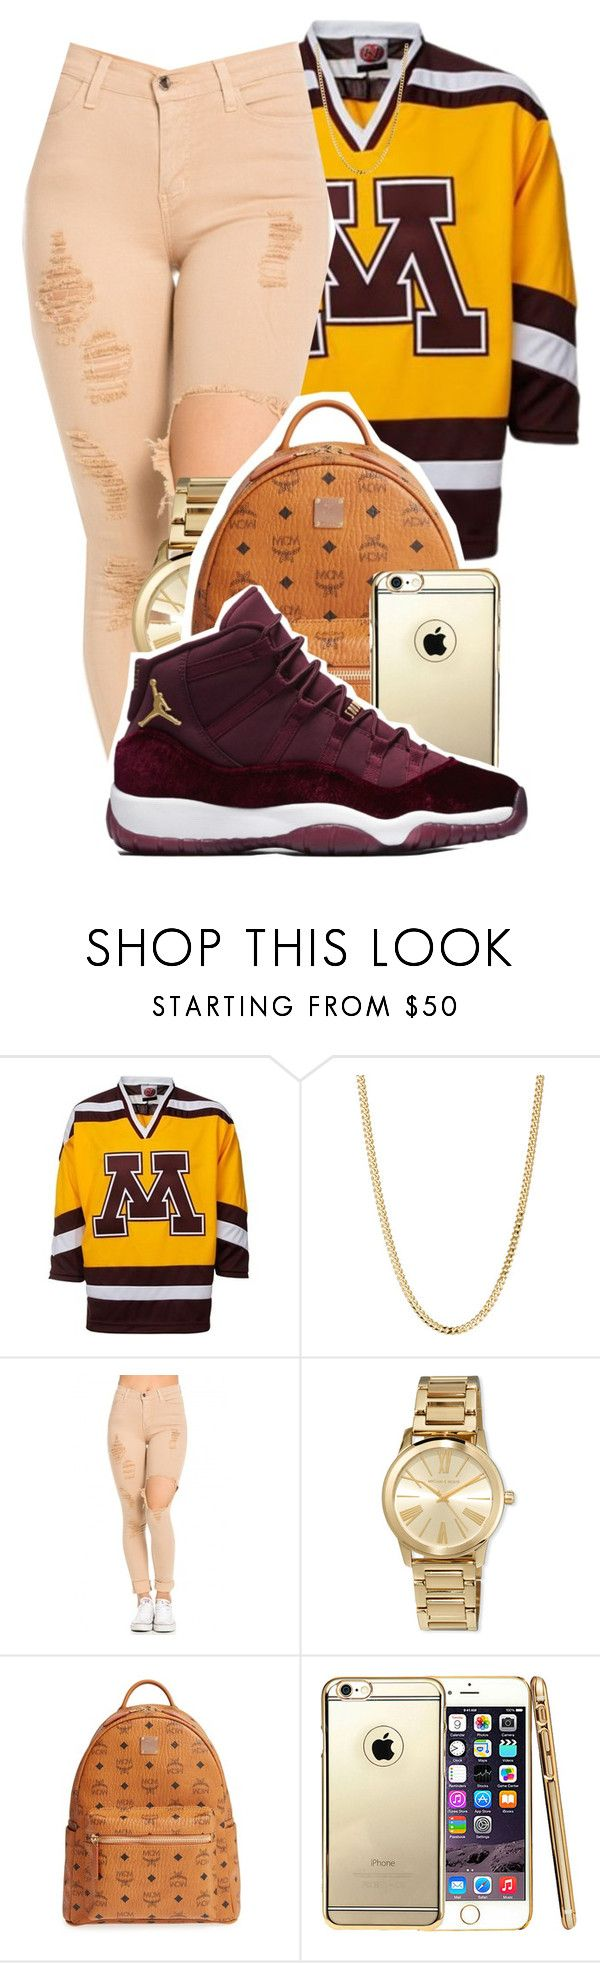 """Tacky Day tomorrow"" by kitty-ma ❤ liked on Polyvore featuring Bianca Pratt, MICHAEL Michael Kors and MCM"